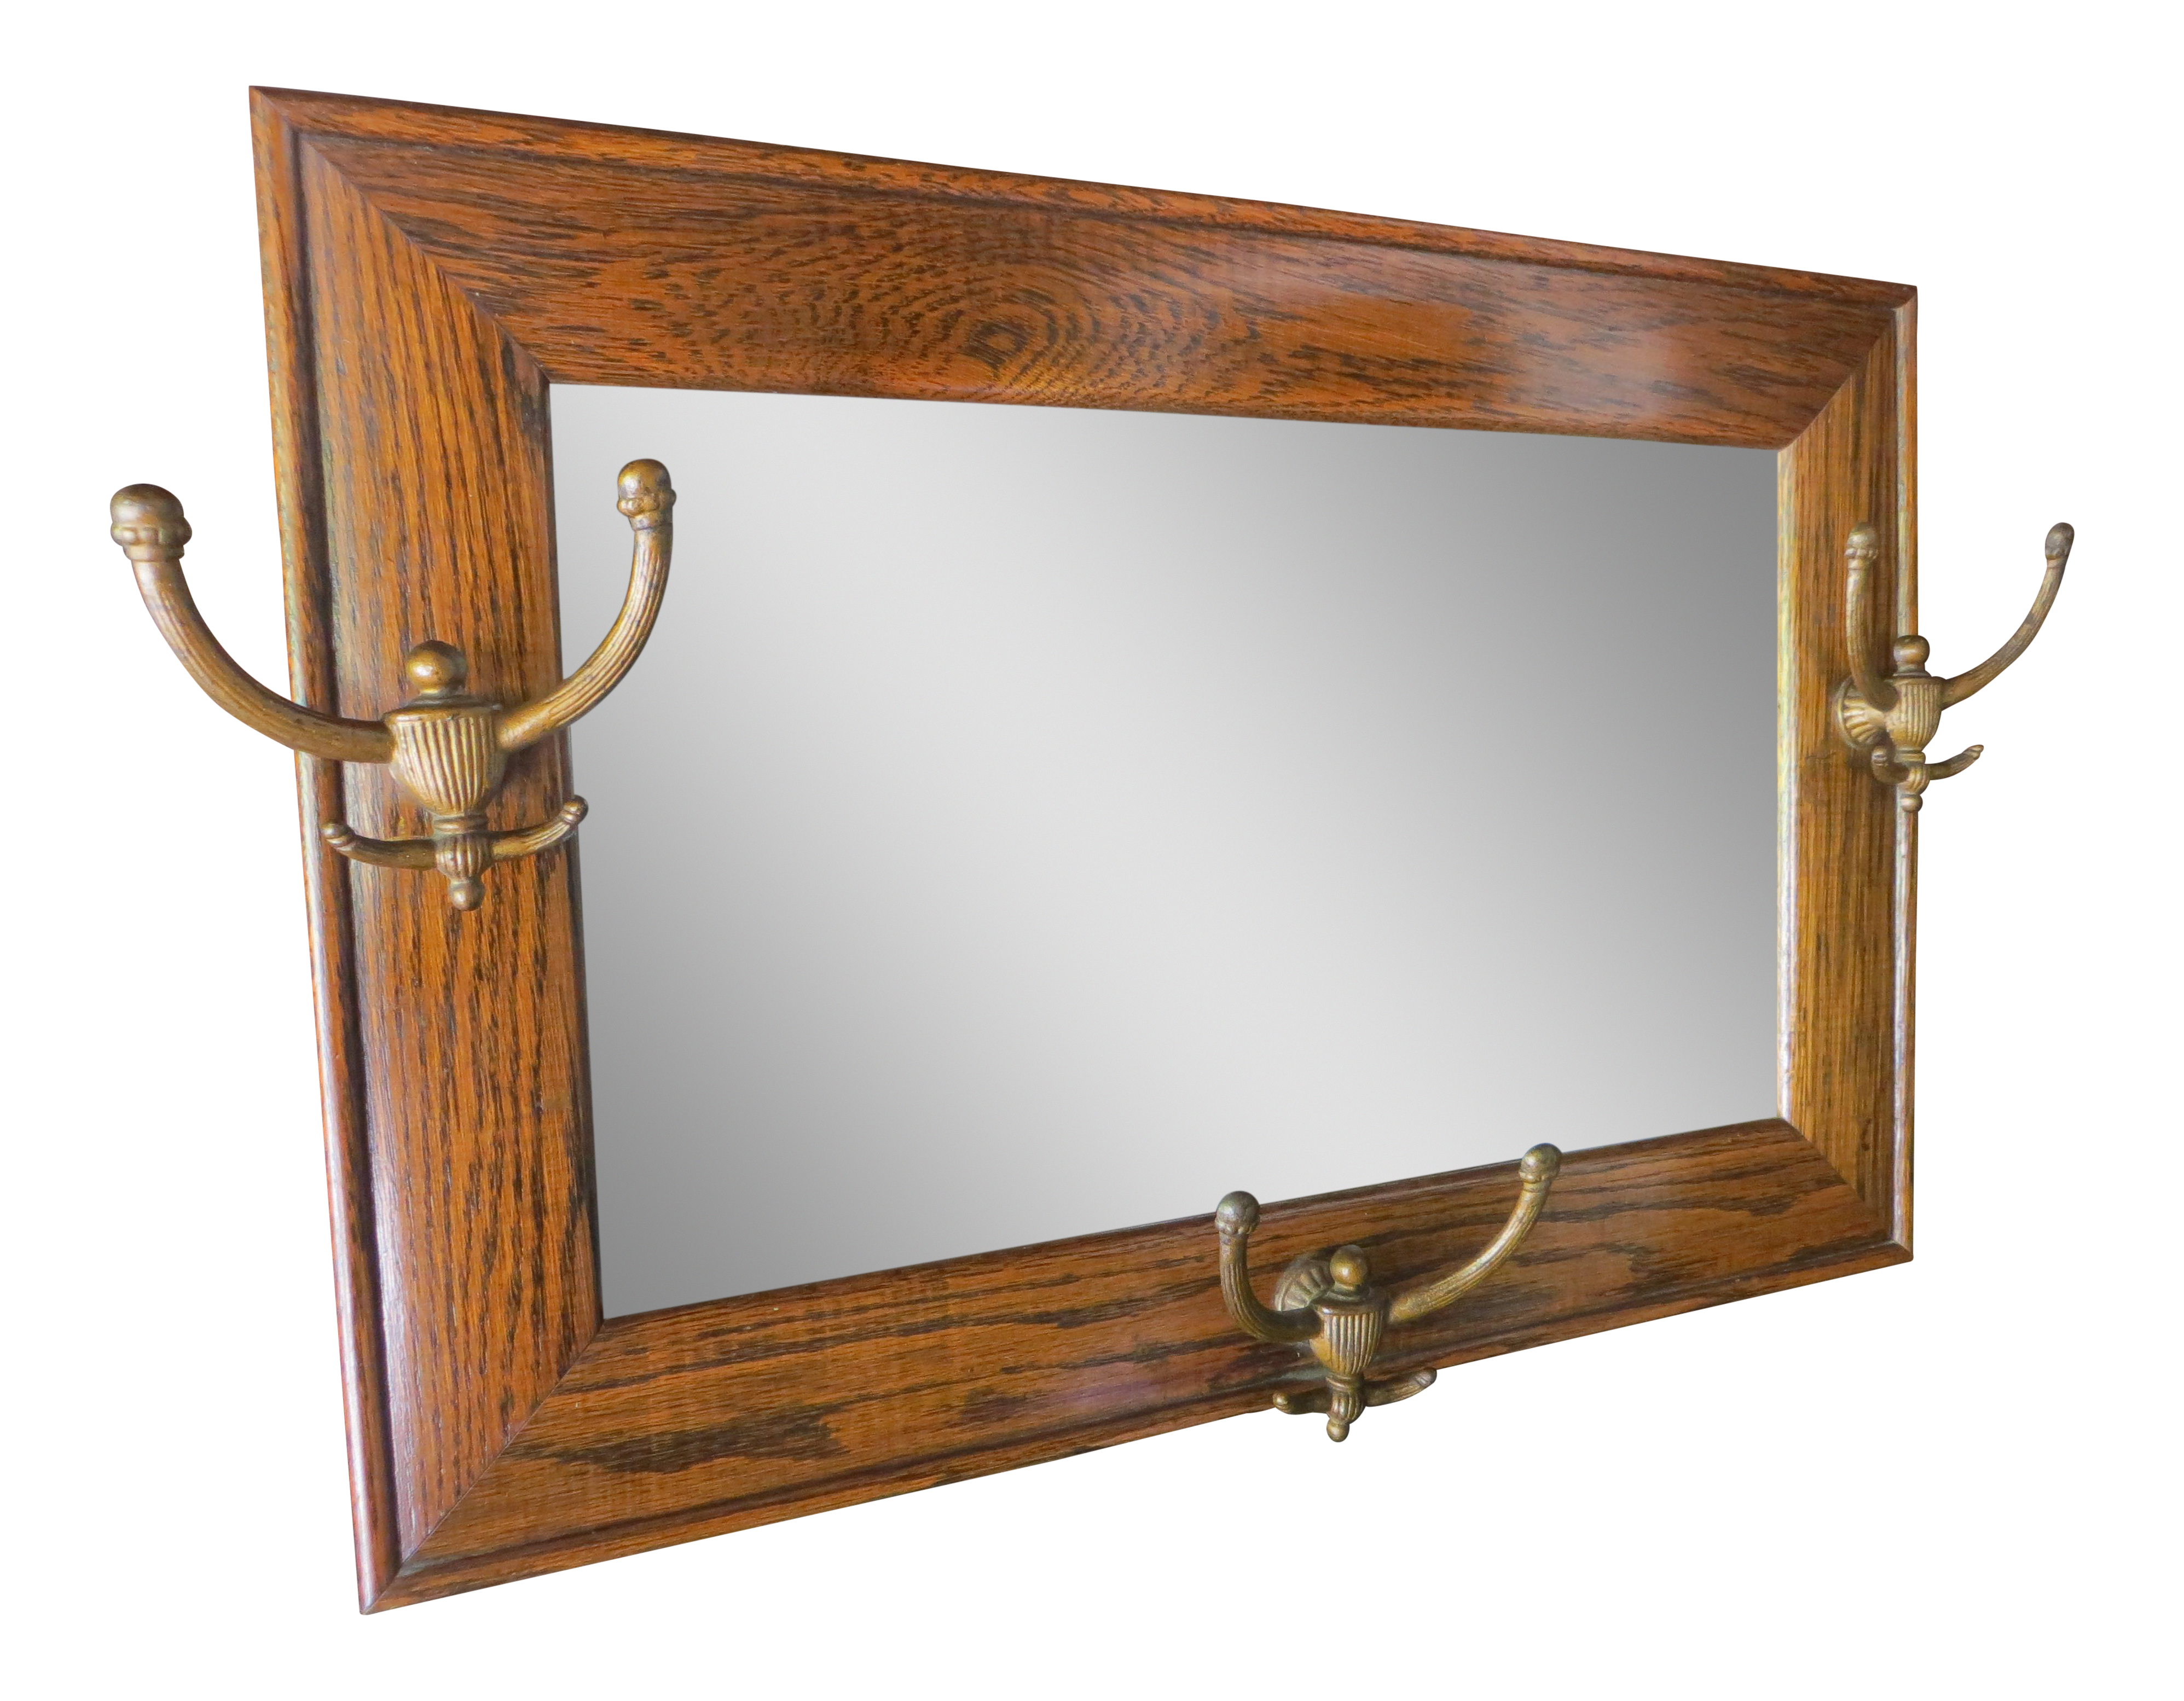 Antique hanging wall mirror tiger oak with hooks chairish amipublicfo Images